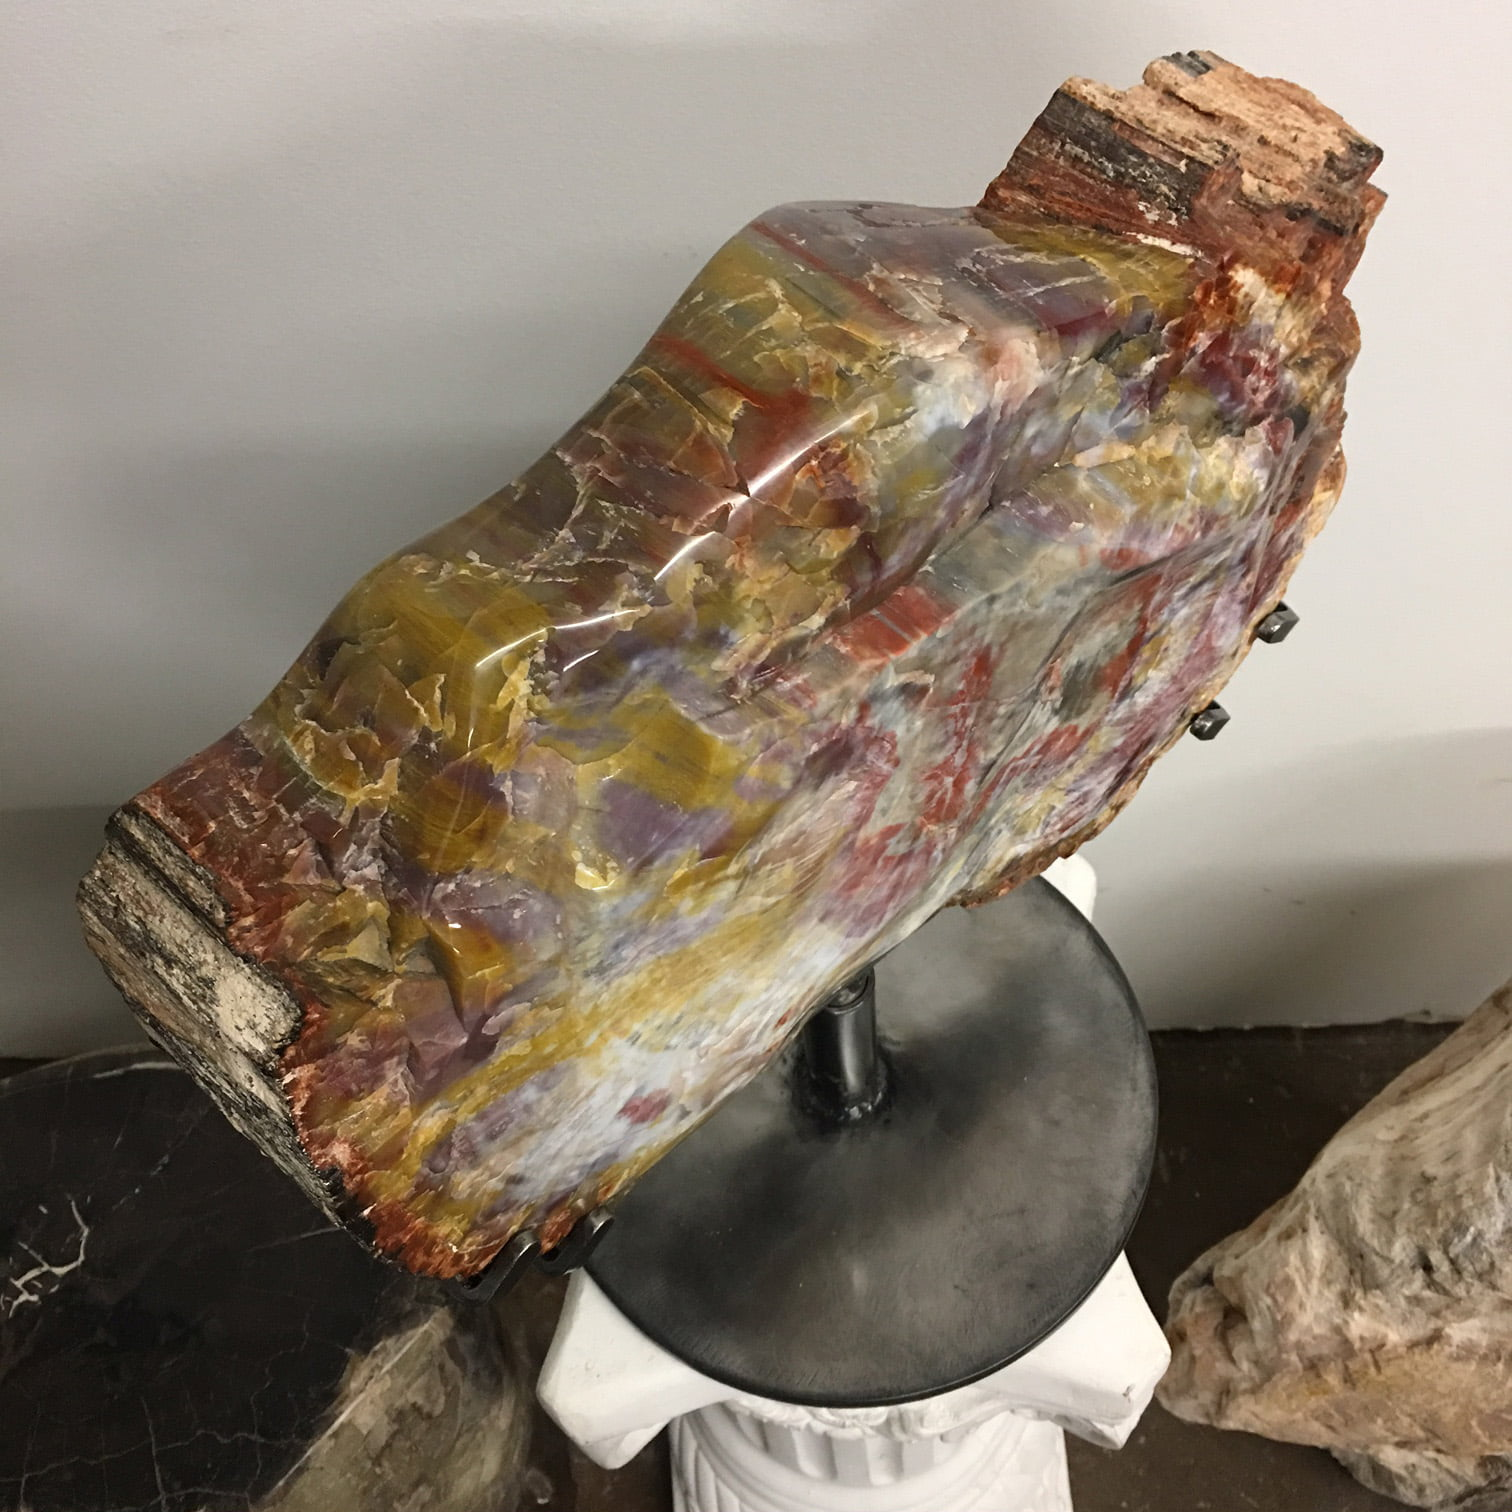 #A8 Museum Arizona Petrified Wood Sculpture Hand Polished On Both Sides - 40 Lbs Plus Rotating Stand